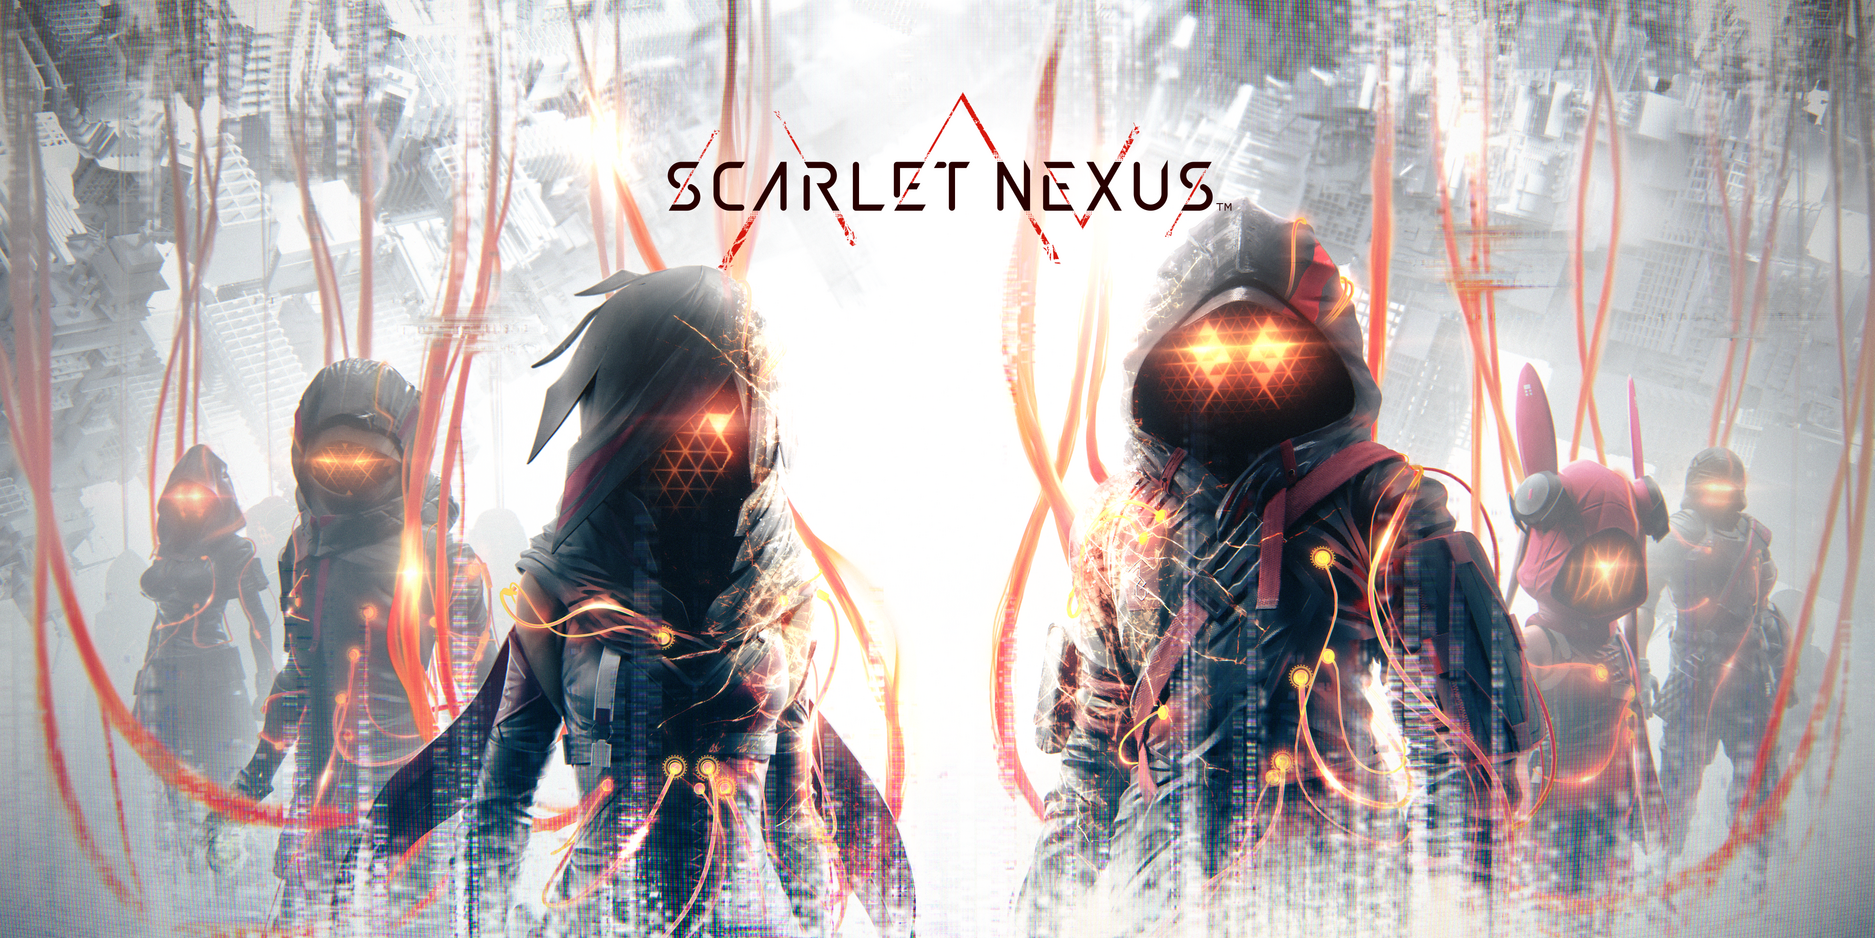 [SCARLET NEXUS] New Brain Punk Action RPG for Xbox Series X, PlayStationⓇ5